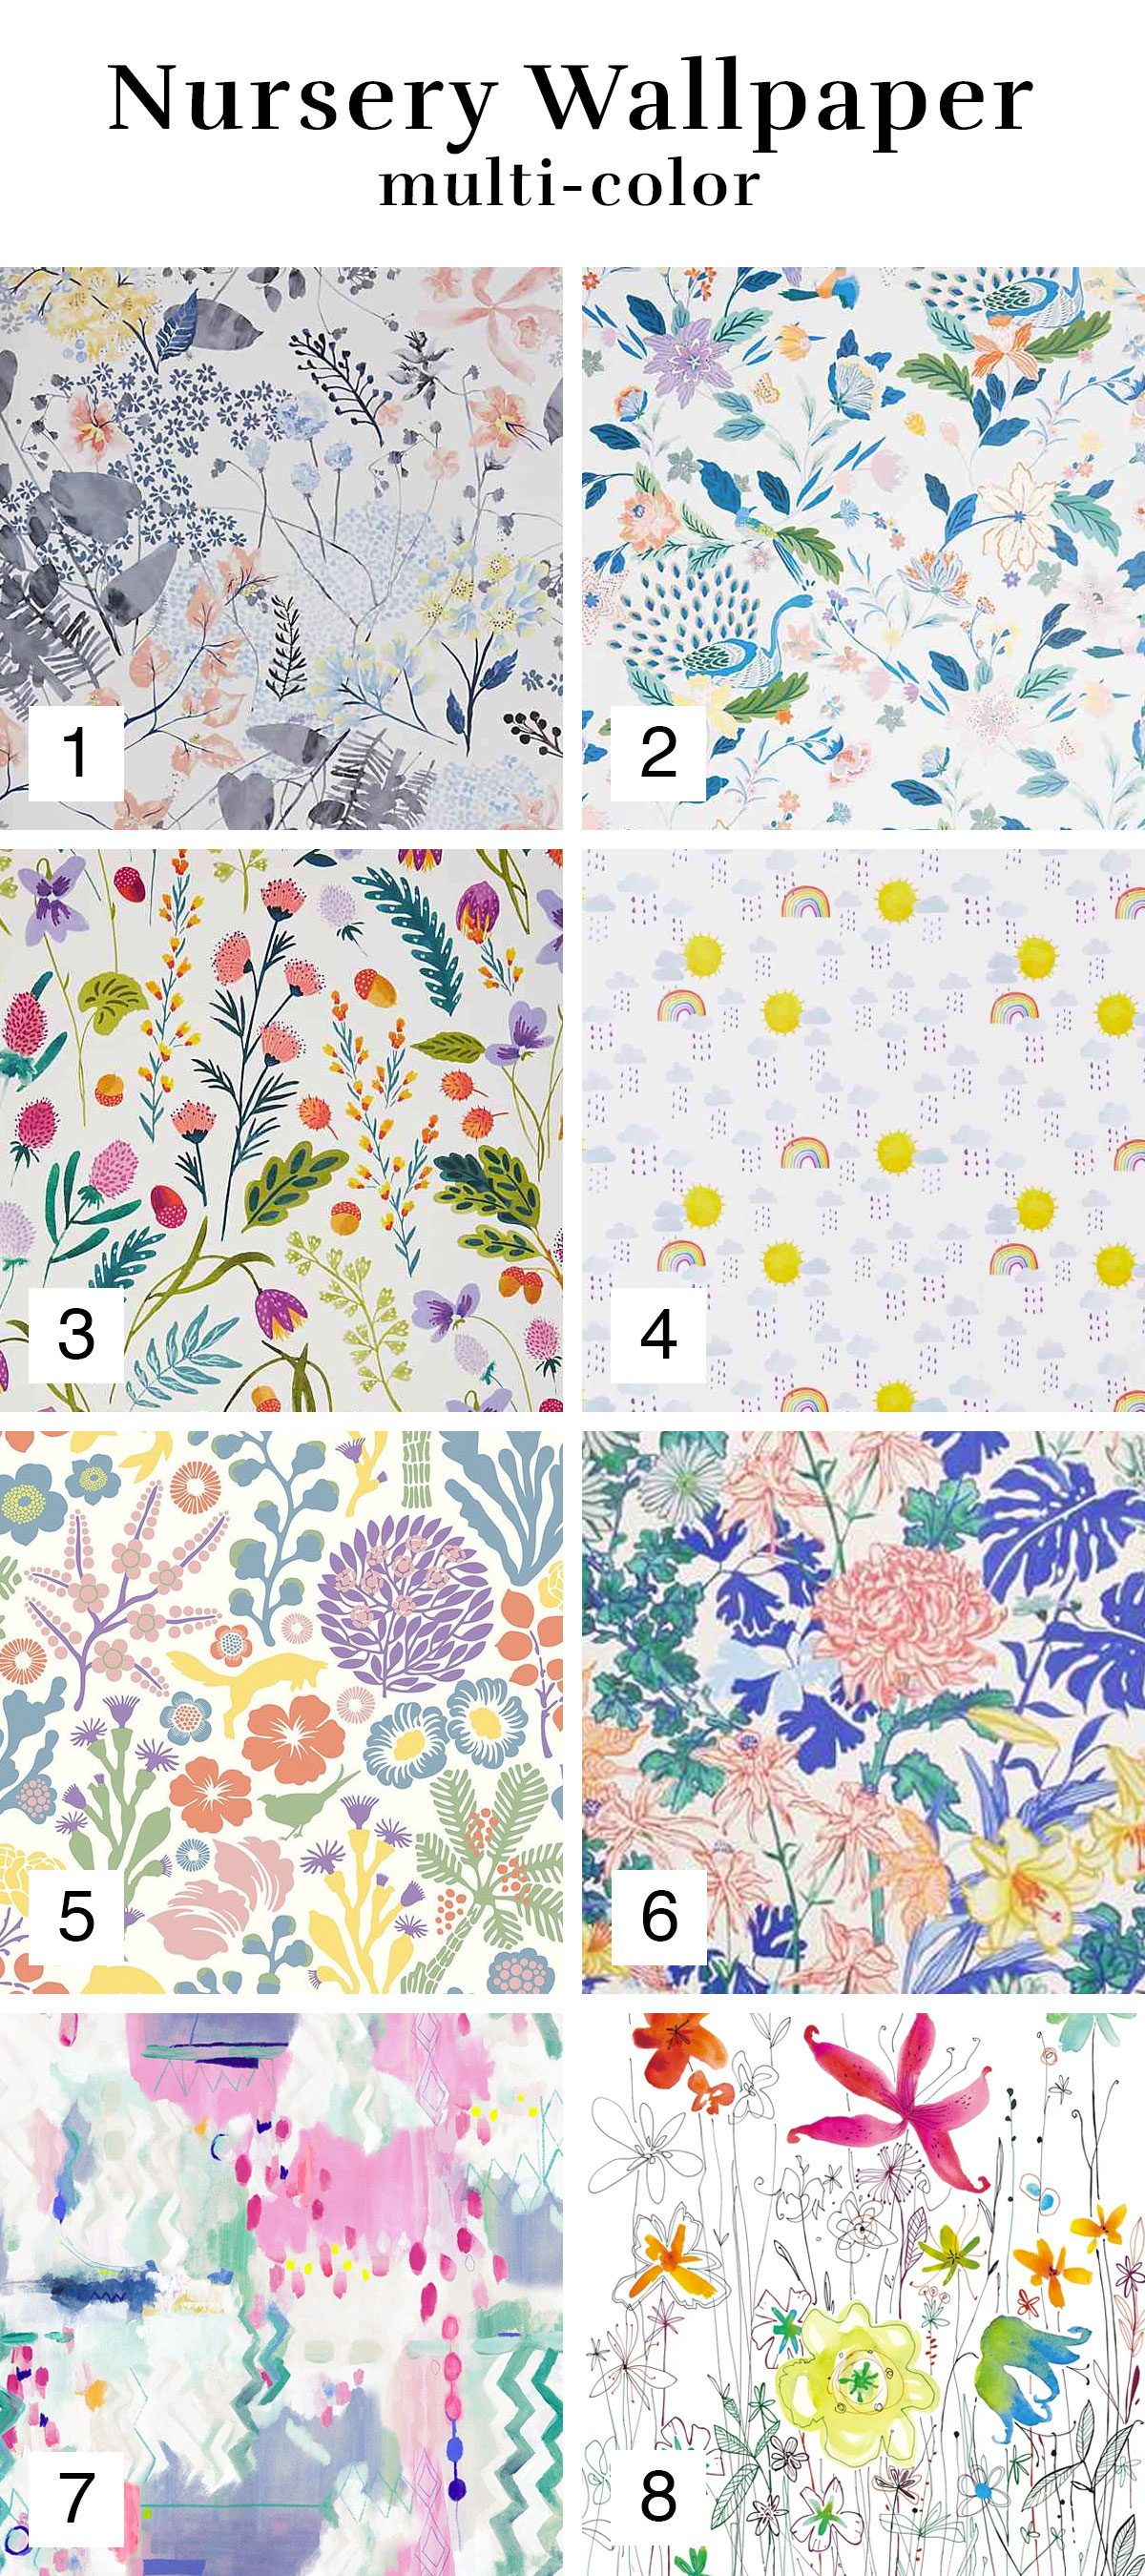 Multicolor Wallpaper Inspiration Roundup for a Nursery or Girl's Room | Melissa Lynch | melissalynch.com